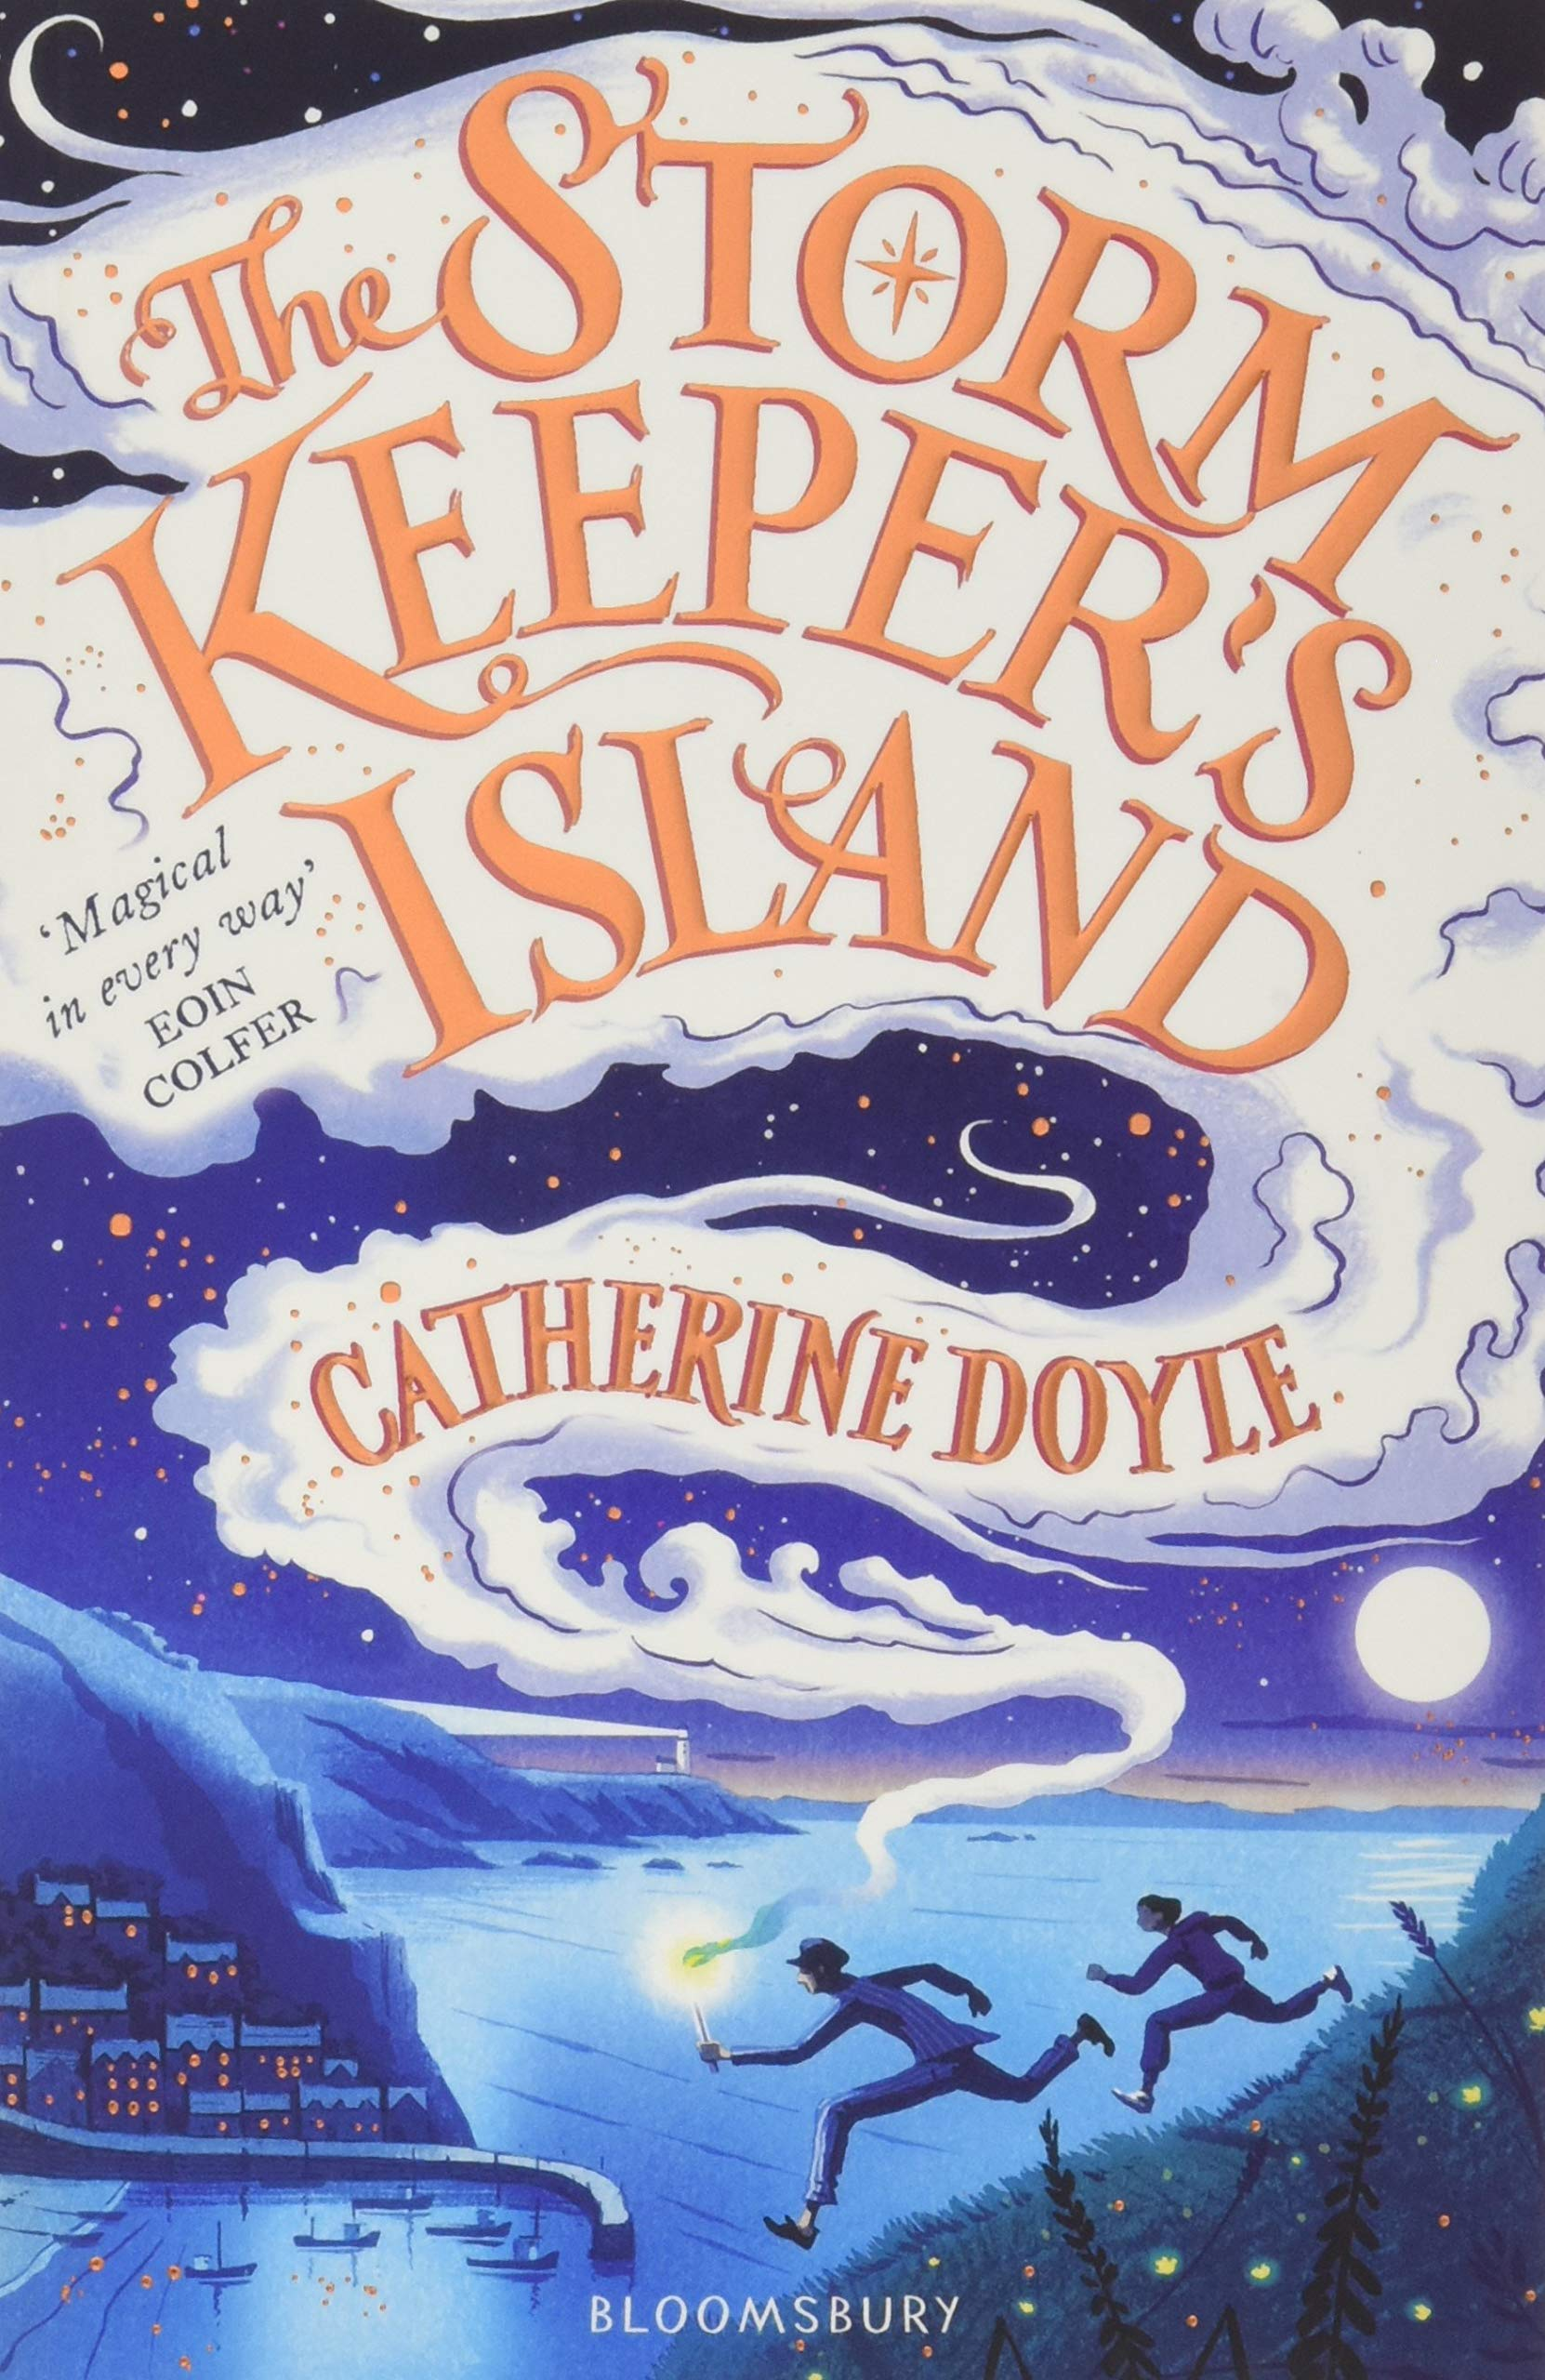 Buy THE STORM KEEPER'S ISLAND by Catherine Doyle